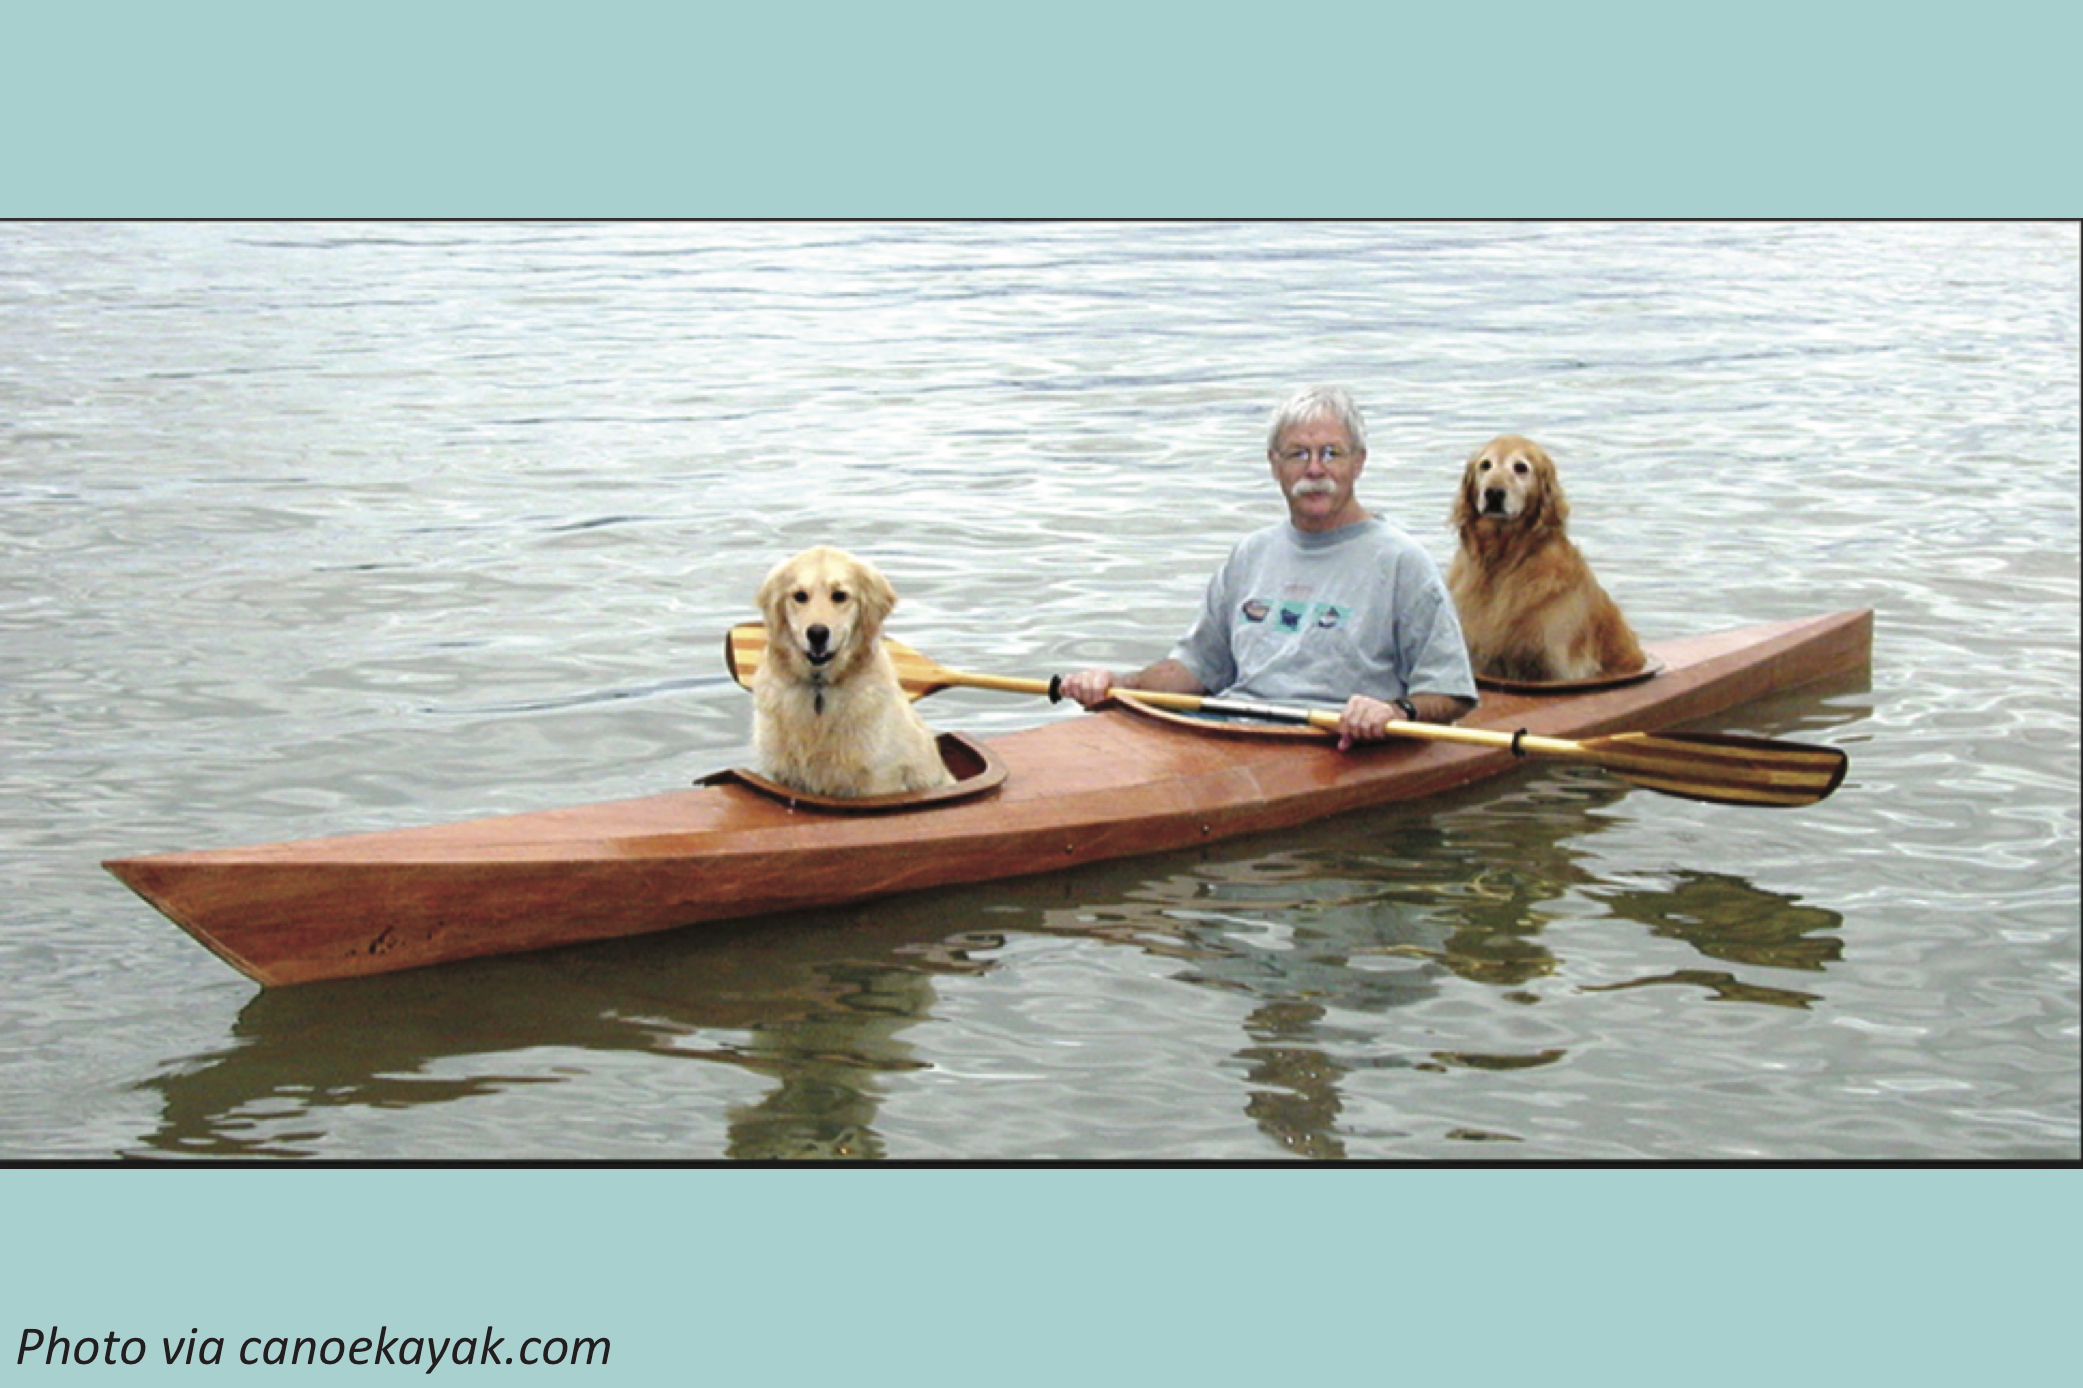 A New Kind of Doggie Paddle